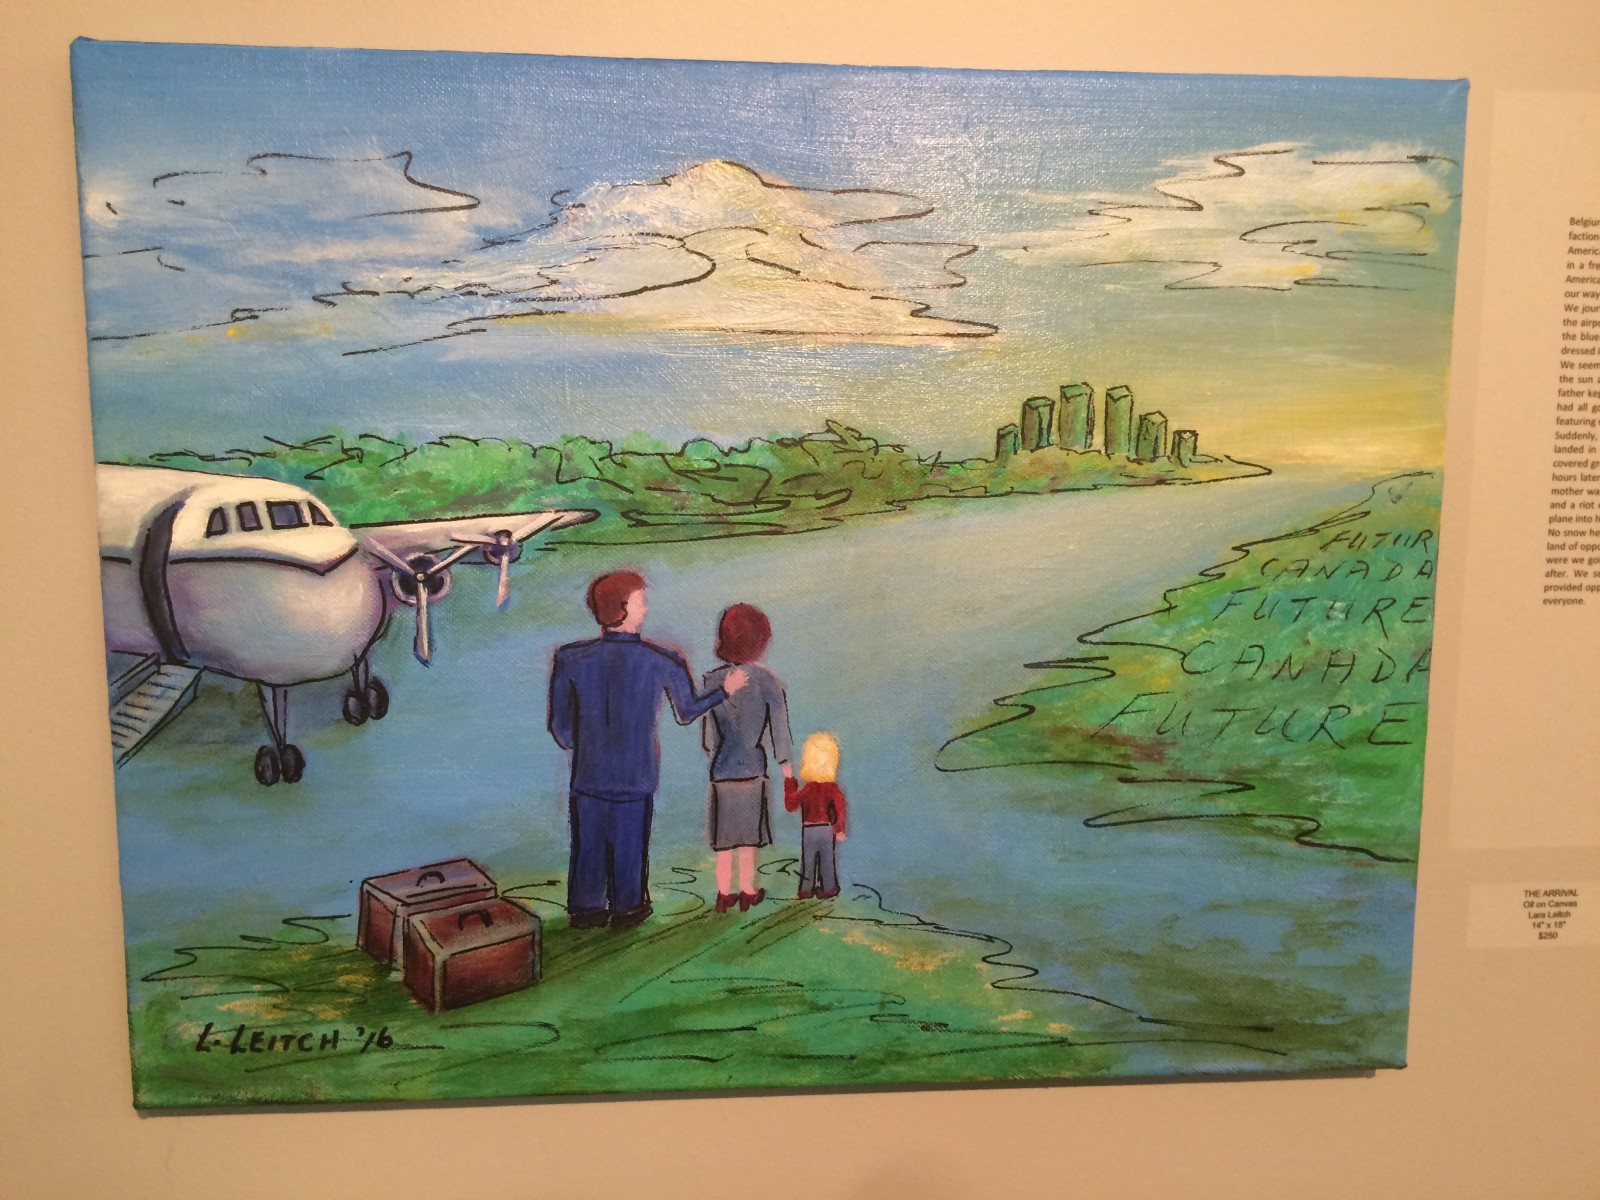 Immigrants tell their story at the Home and Away art exhibit